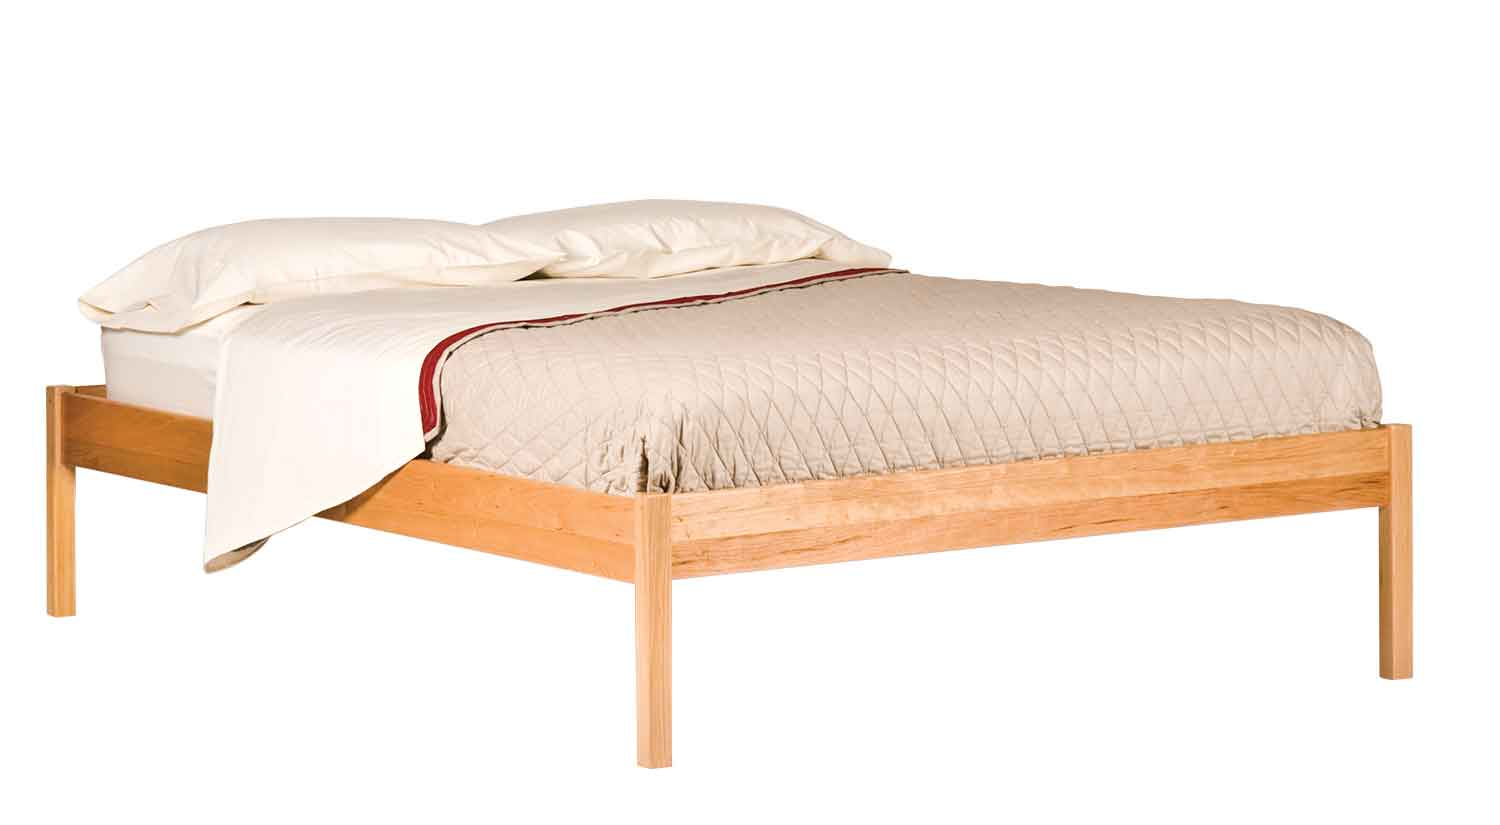 Circle Furniture - Basic Bed | Hand-Crafted Beds New England ...